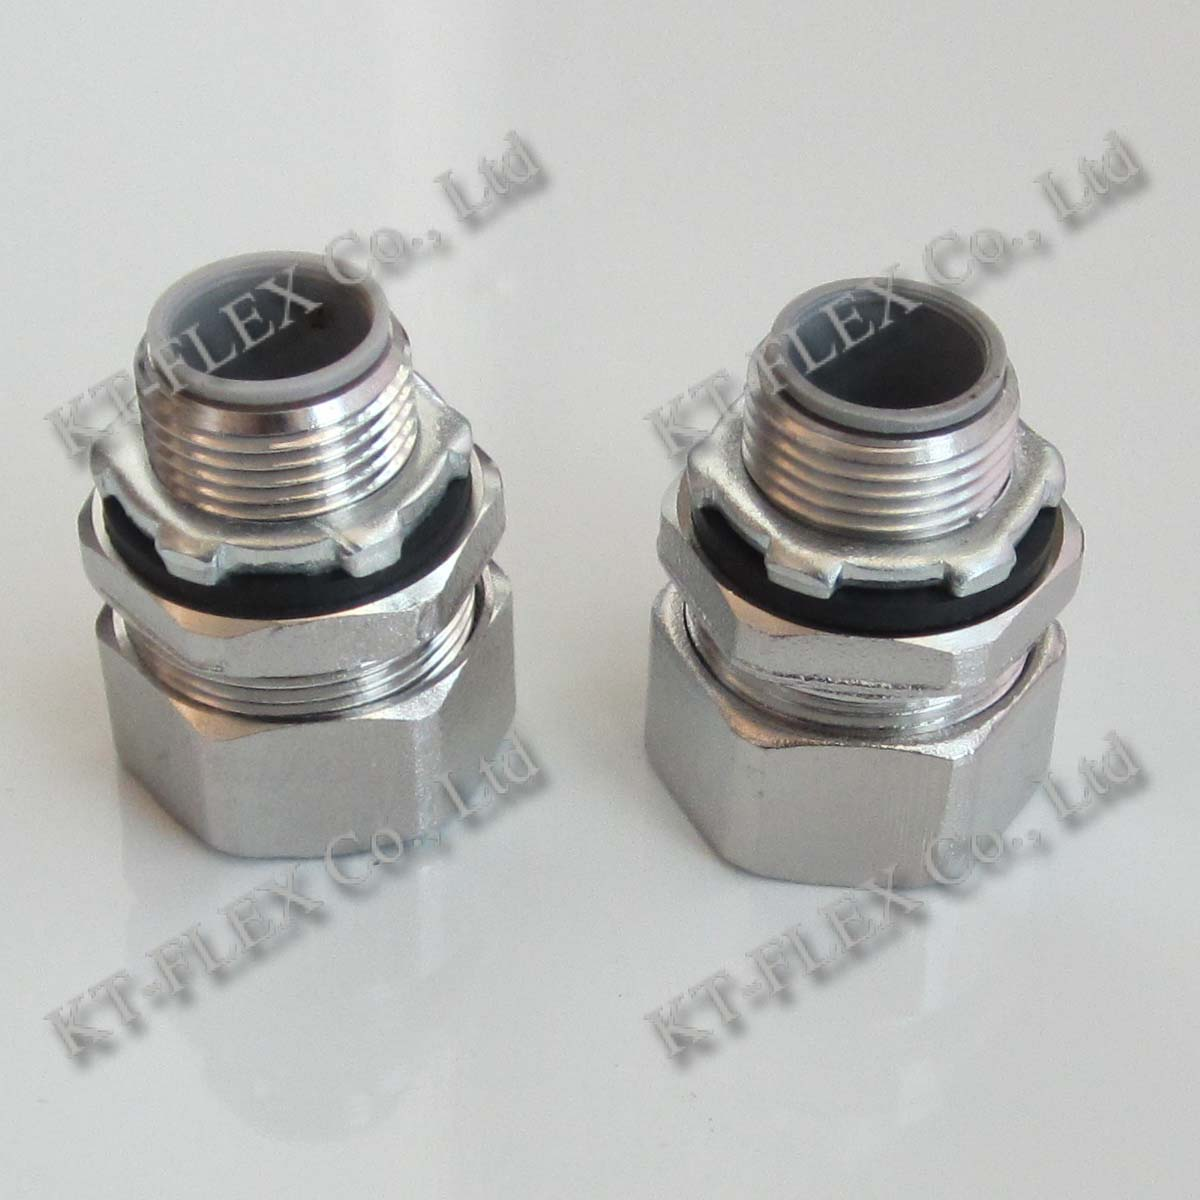 Stainless steel liquid tight connector straight flex